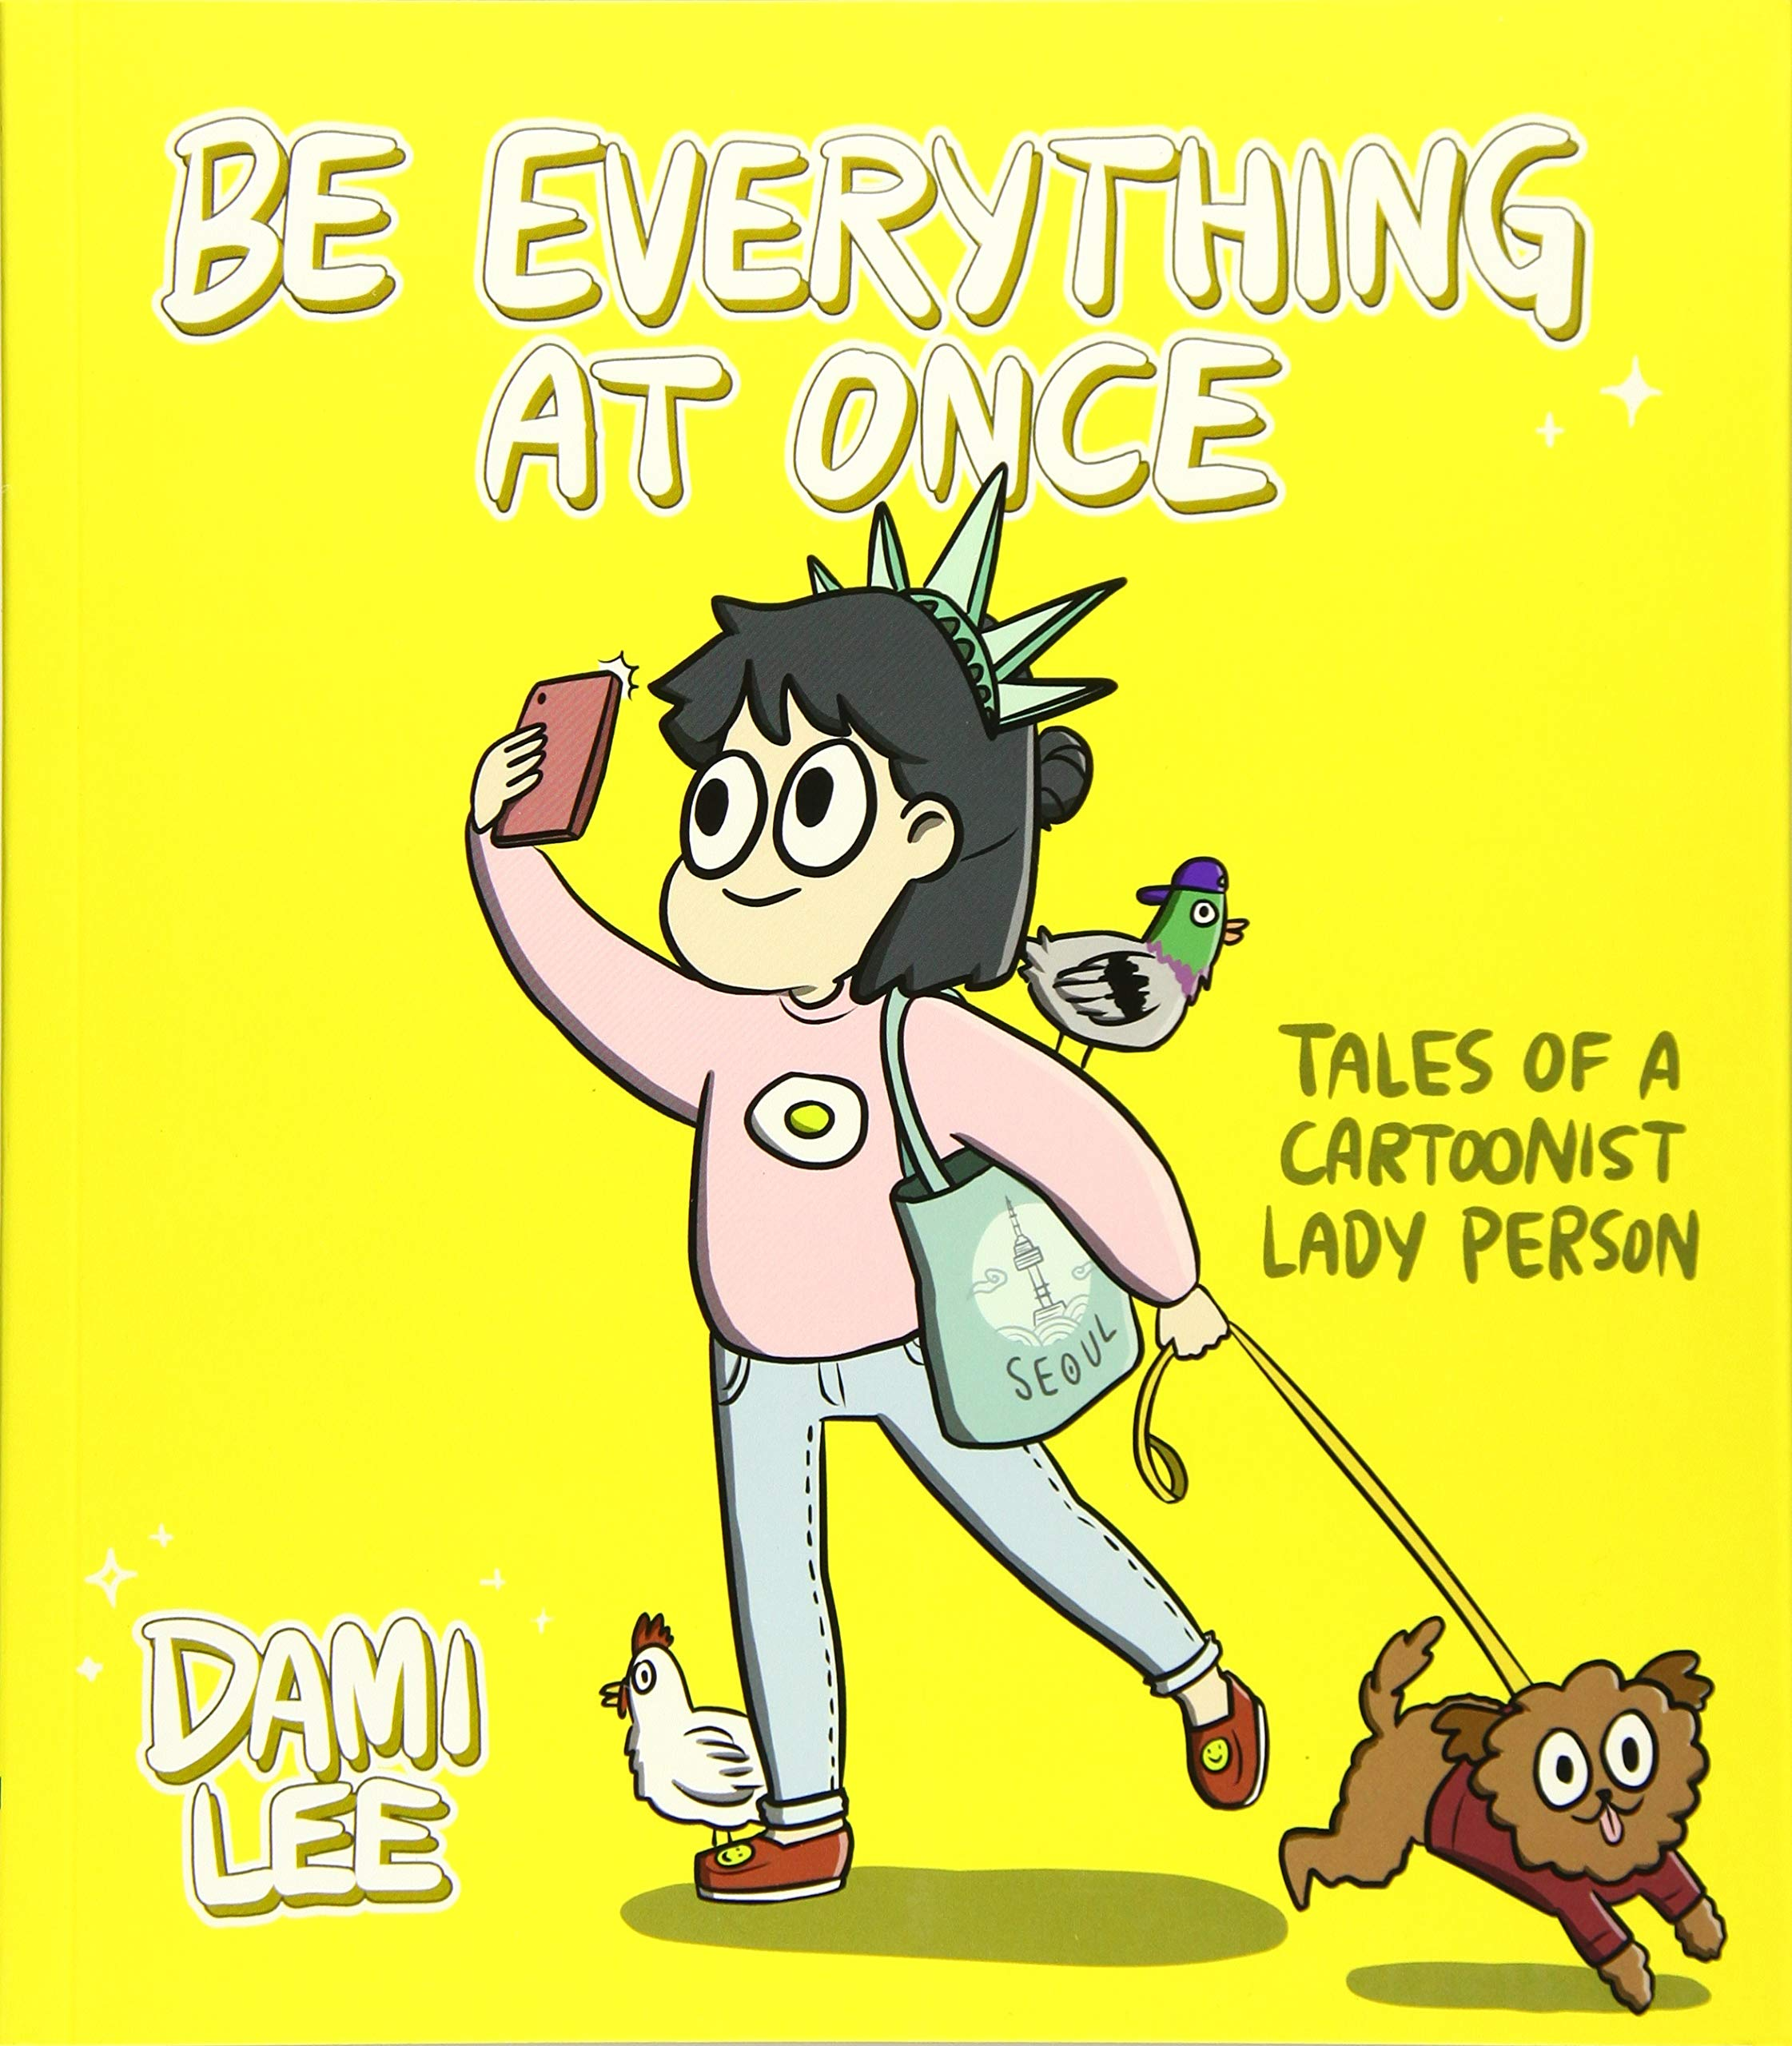 Lee, BE EVERYTHING AT ONCE, US cover.jpg